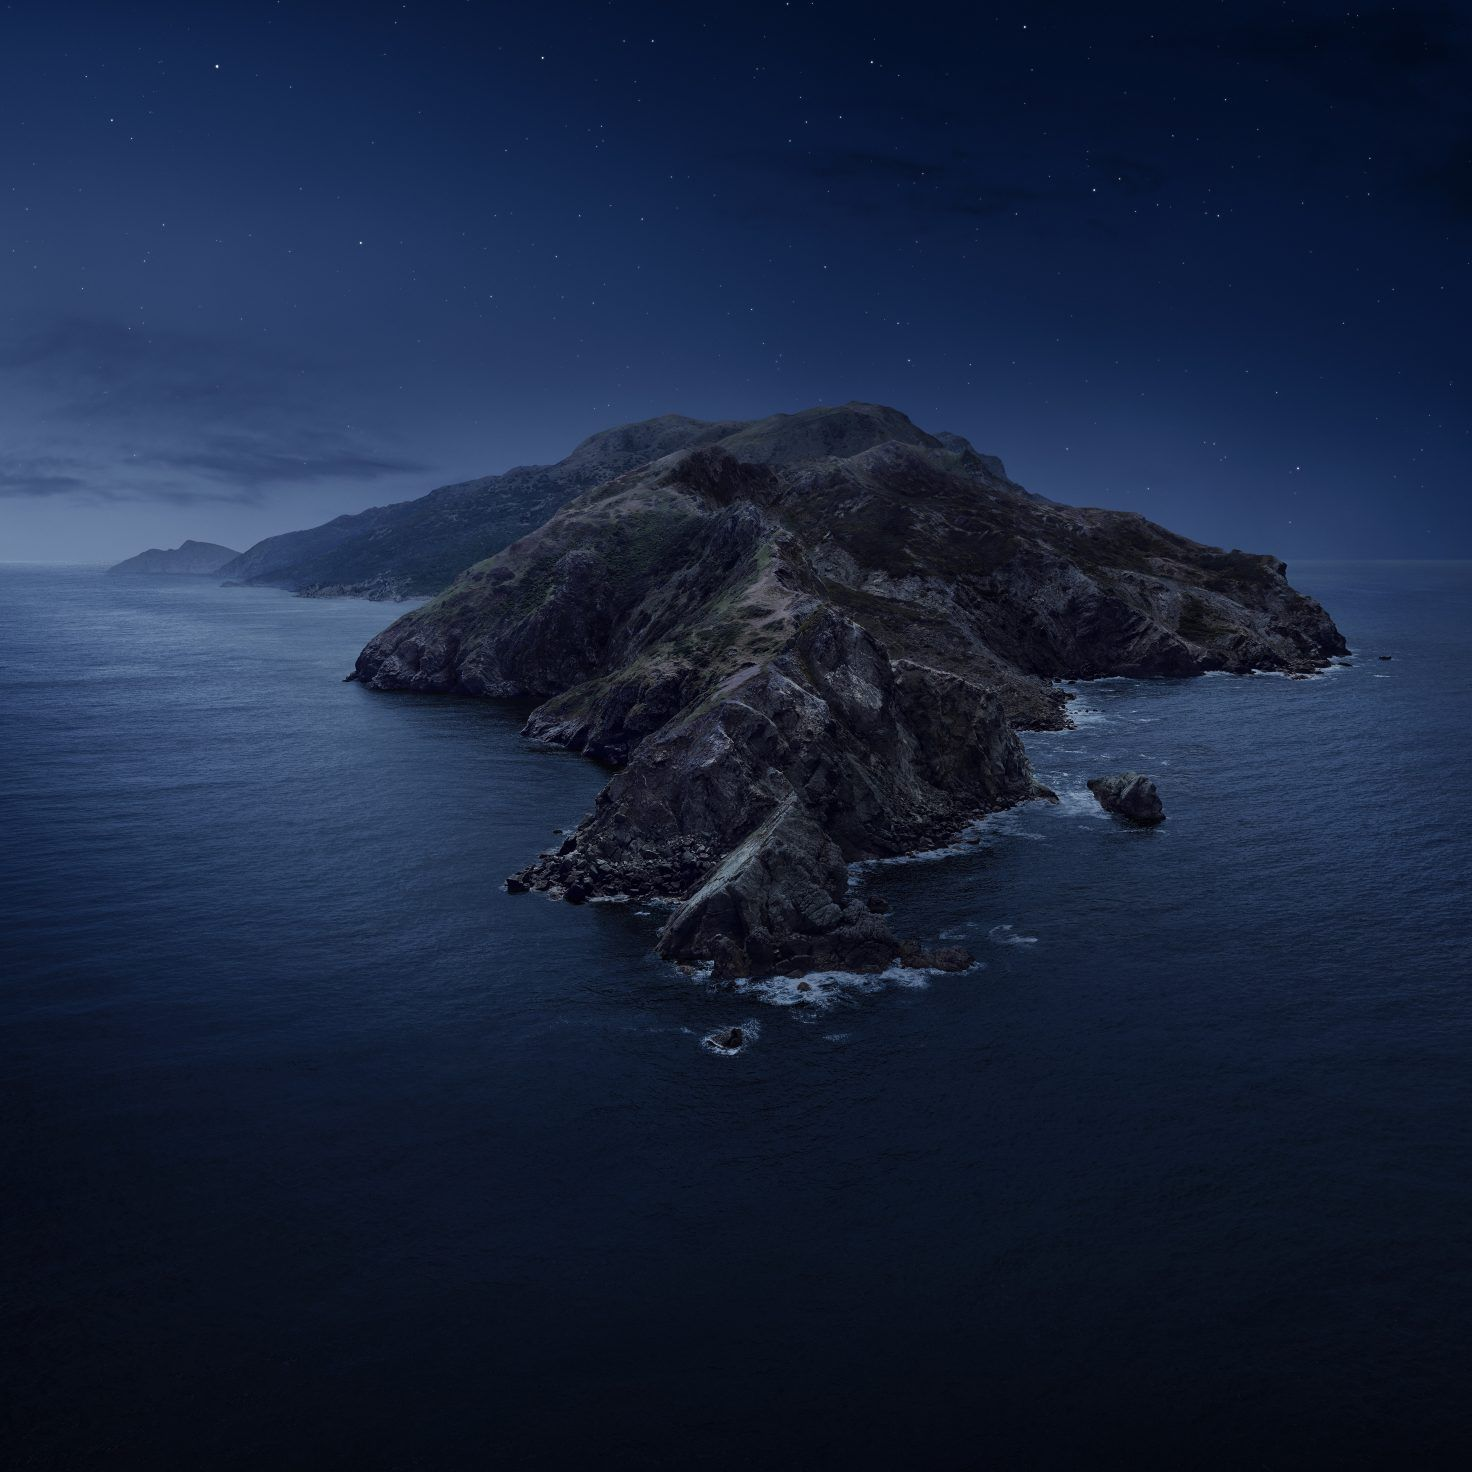 Ios 13 And Macos Catalina Wallpapers Iphone Wallpaper Night Apple Wallpaper Dark Wallpaper